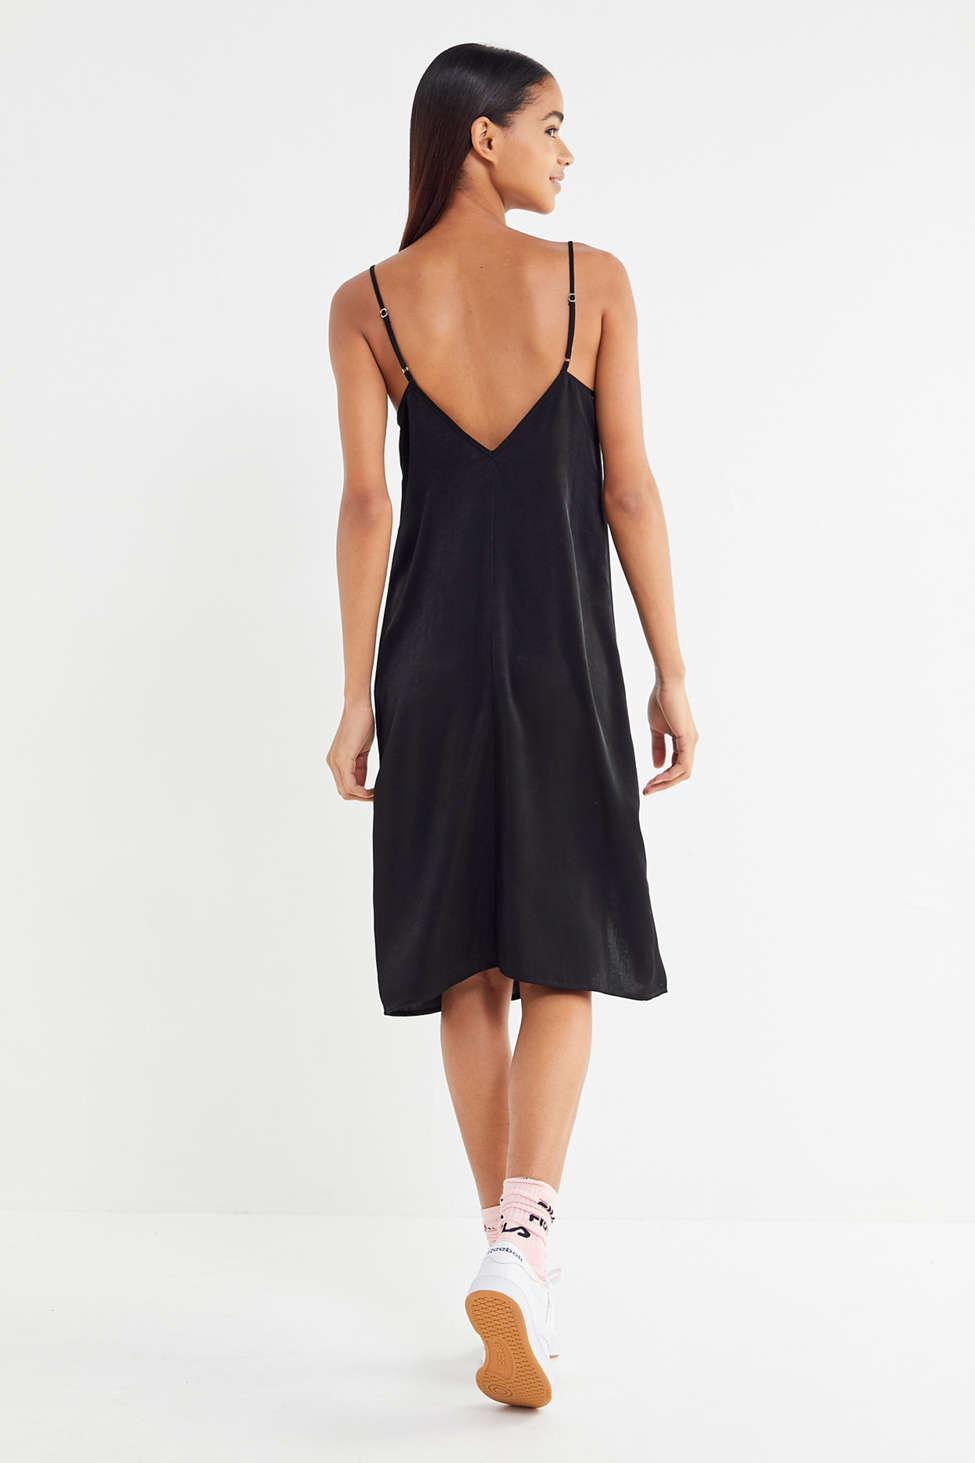 630c987374b1 Out From Under Justine Satin Front-slit Slip Dress in Black - Lyst